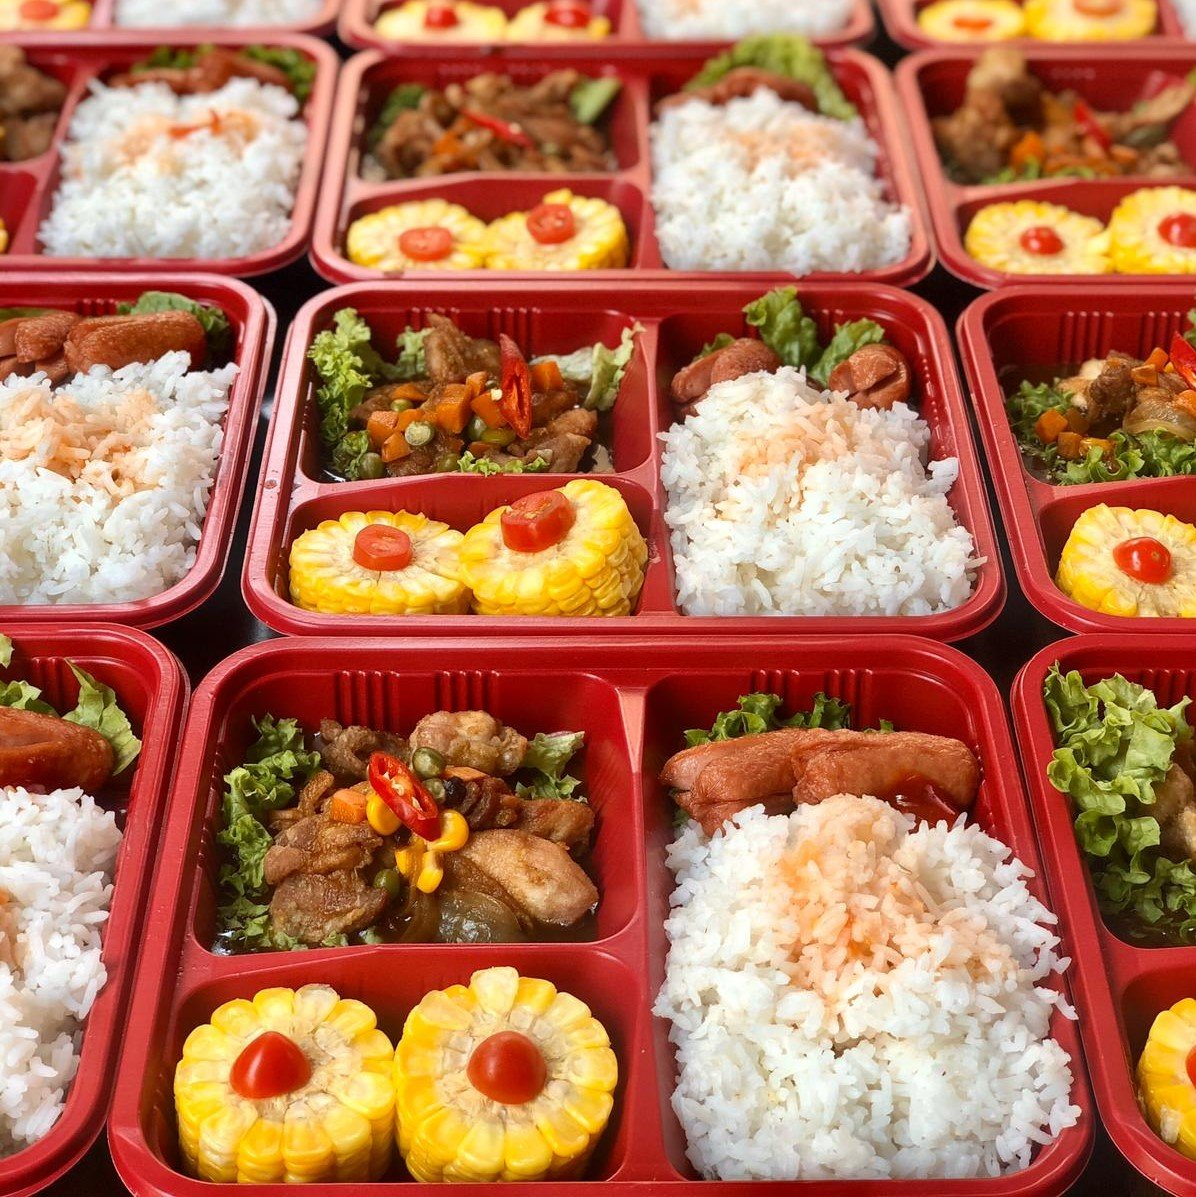 lunch-meal-boxes